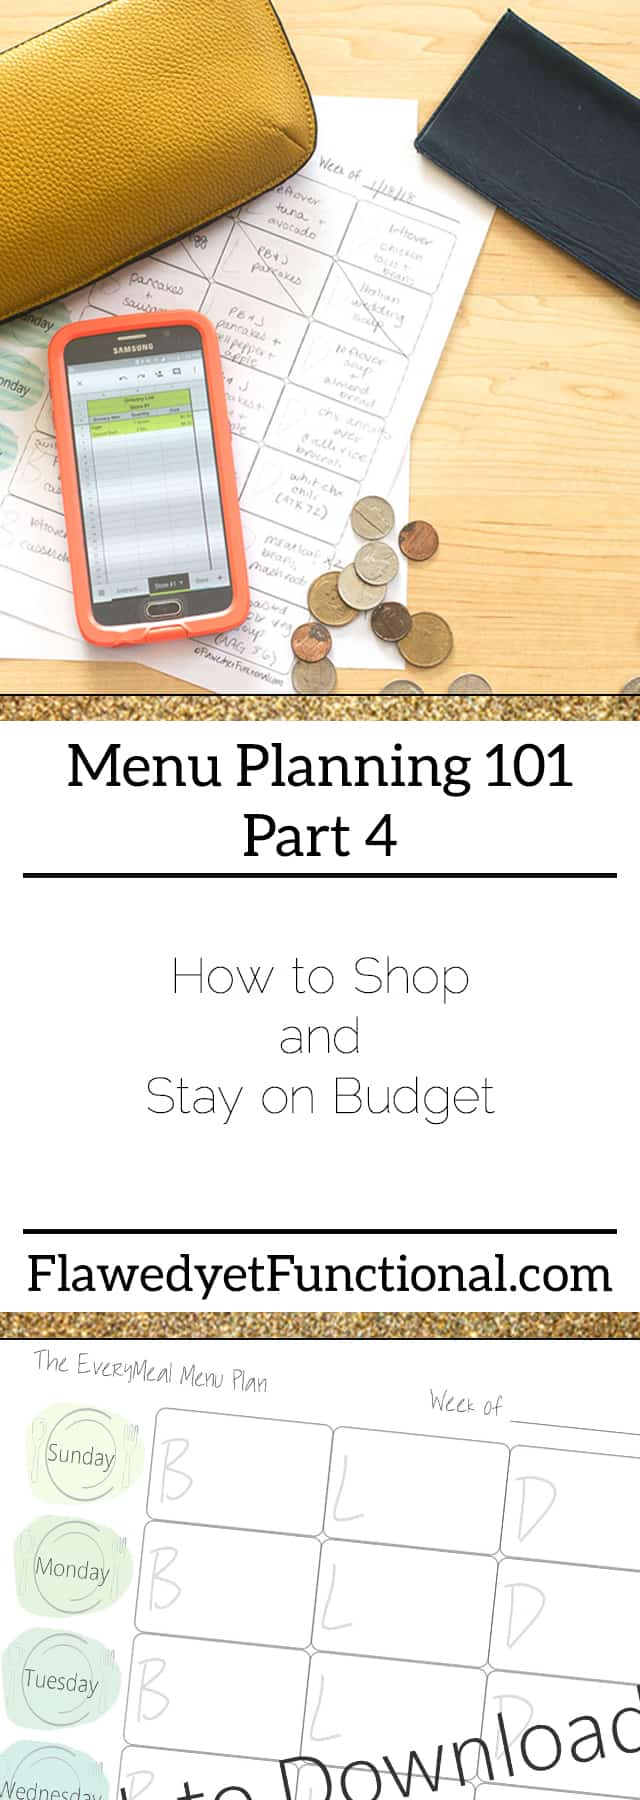 Menu Planning Stay on Budget